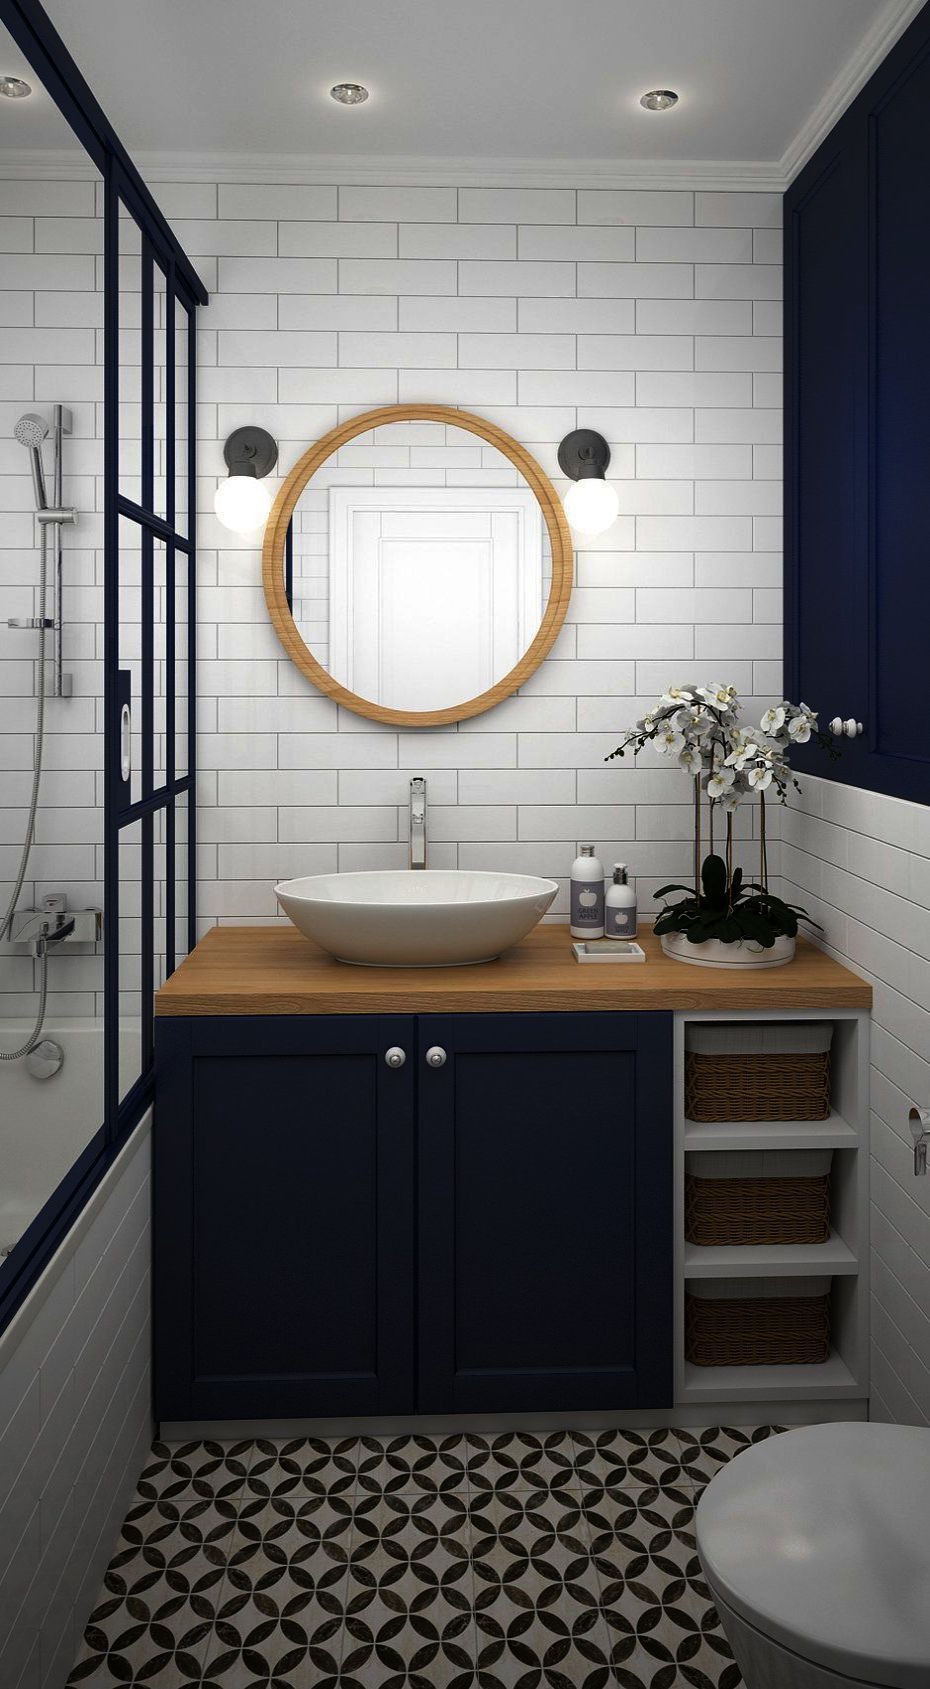 Bathroom Tile Lowes What Bathroom Sink Cabinets Around Guest Bathroom Ideas With Tub Small Bathroom Makeover Small Bathroom Bathroom Inspiration